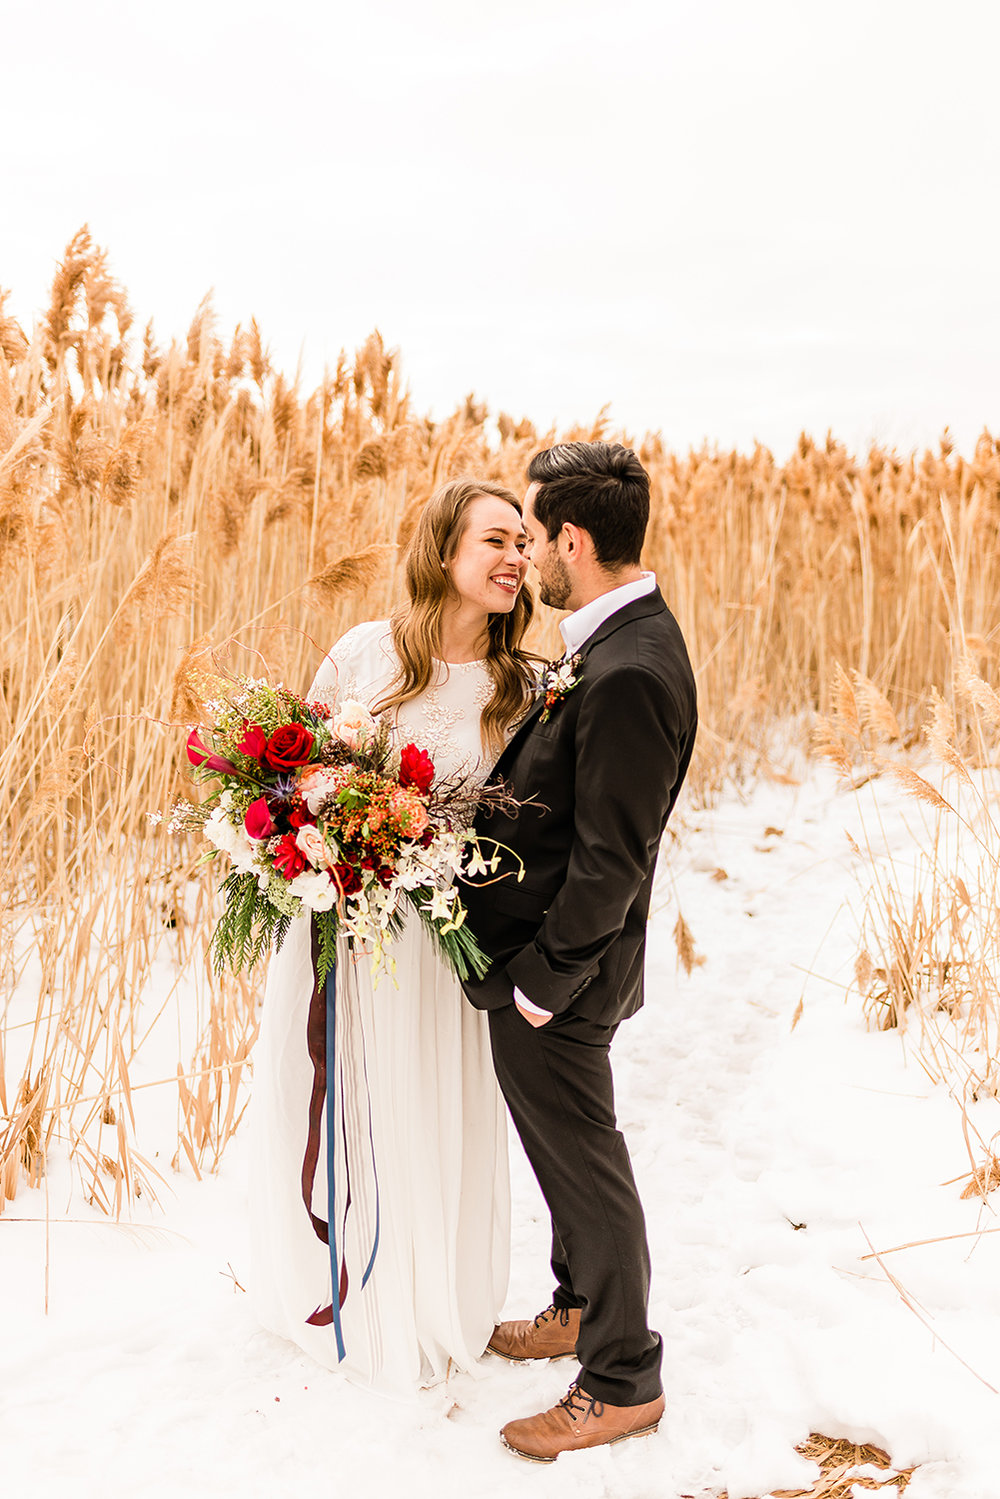 colorado-winter-elopment-colorado-springs-wedding-photographer-2.jpg